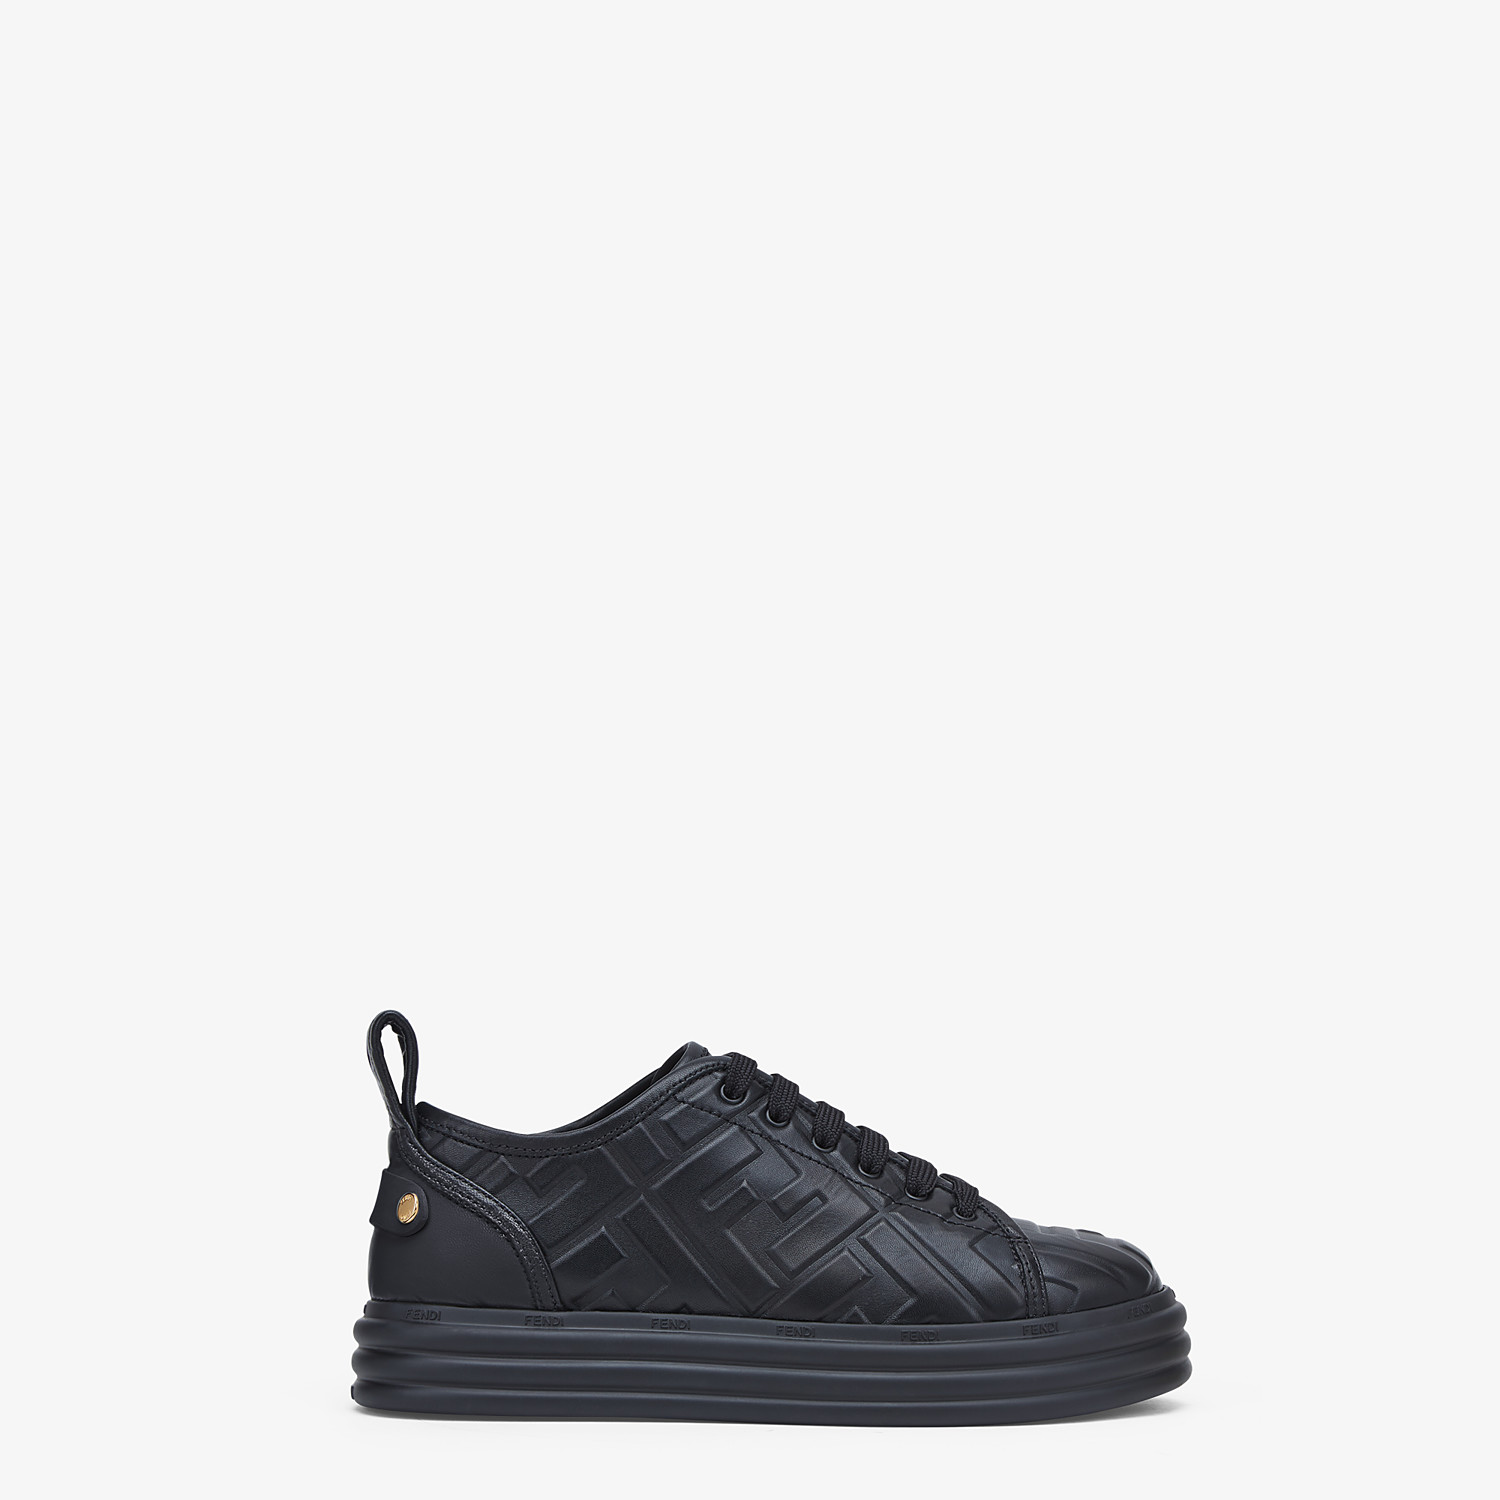 FENDI FENDI RISE - Black leather flatform sneakers - view 1 detail